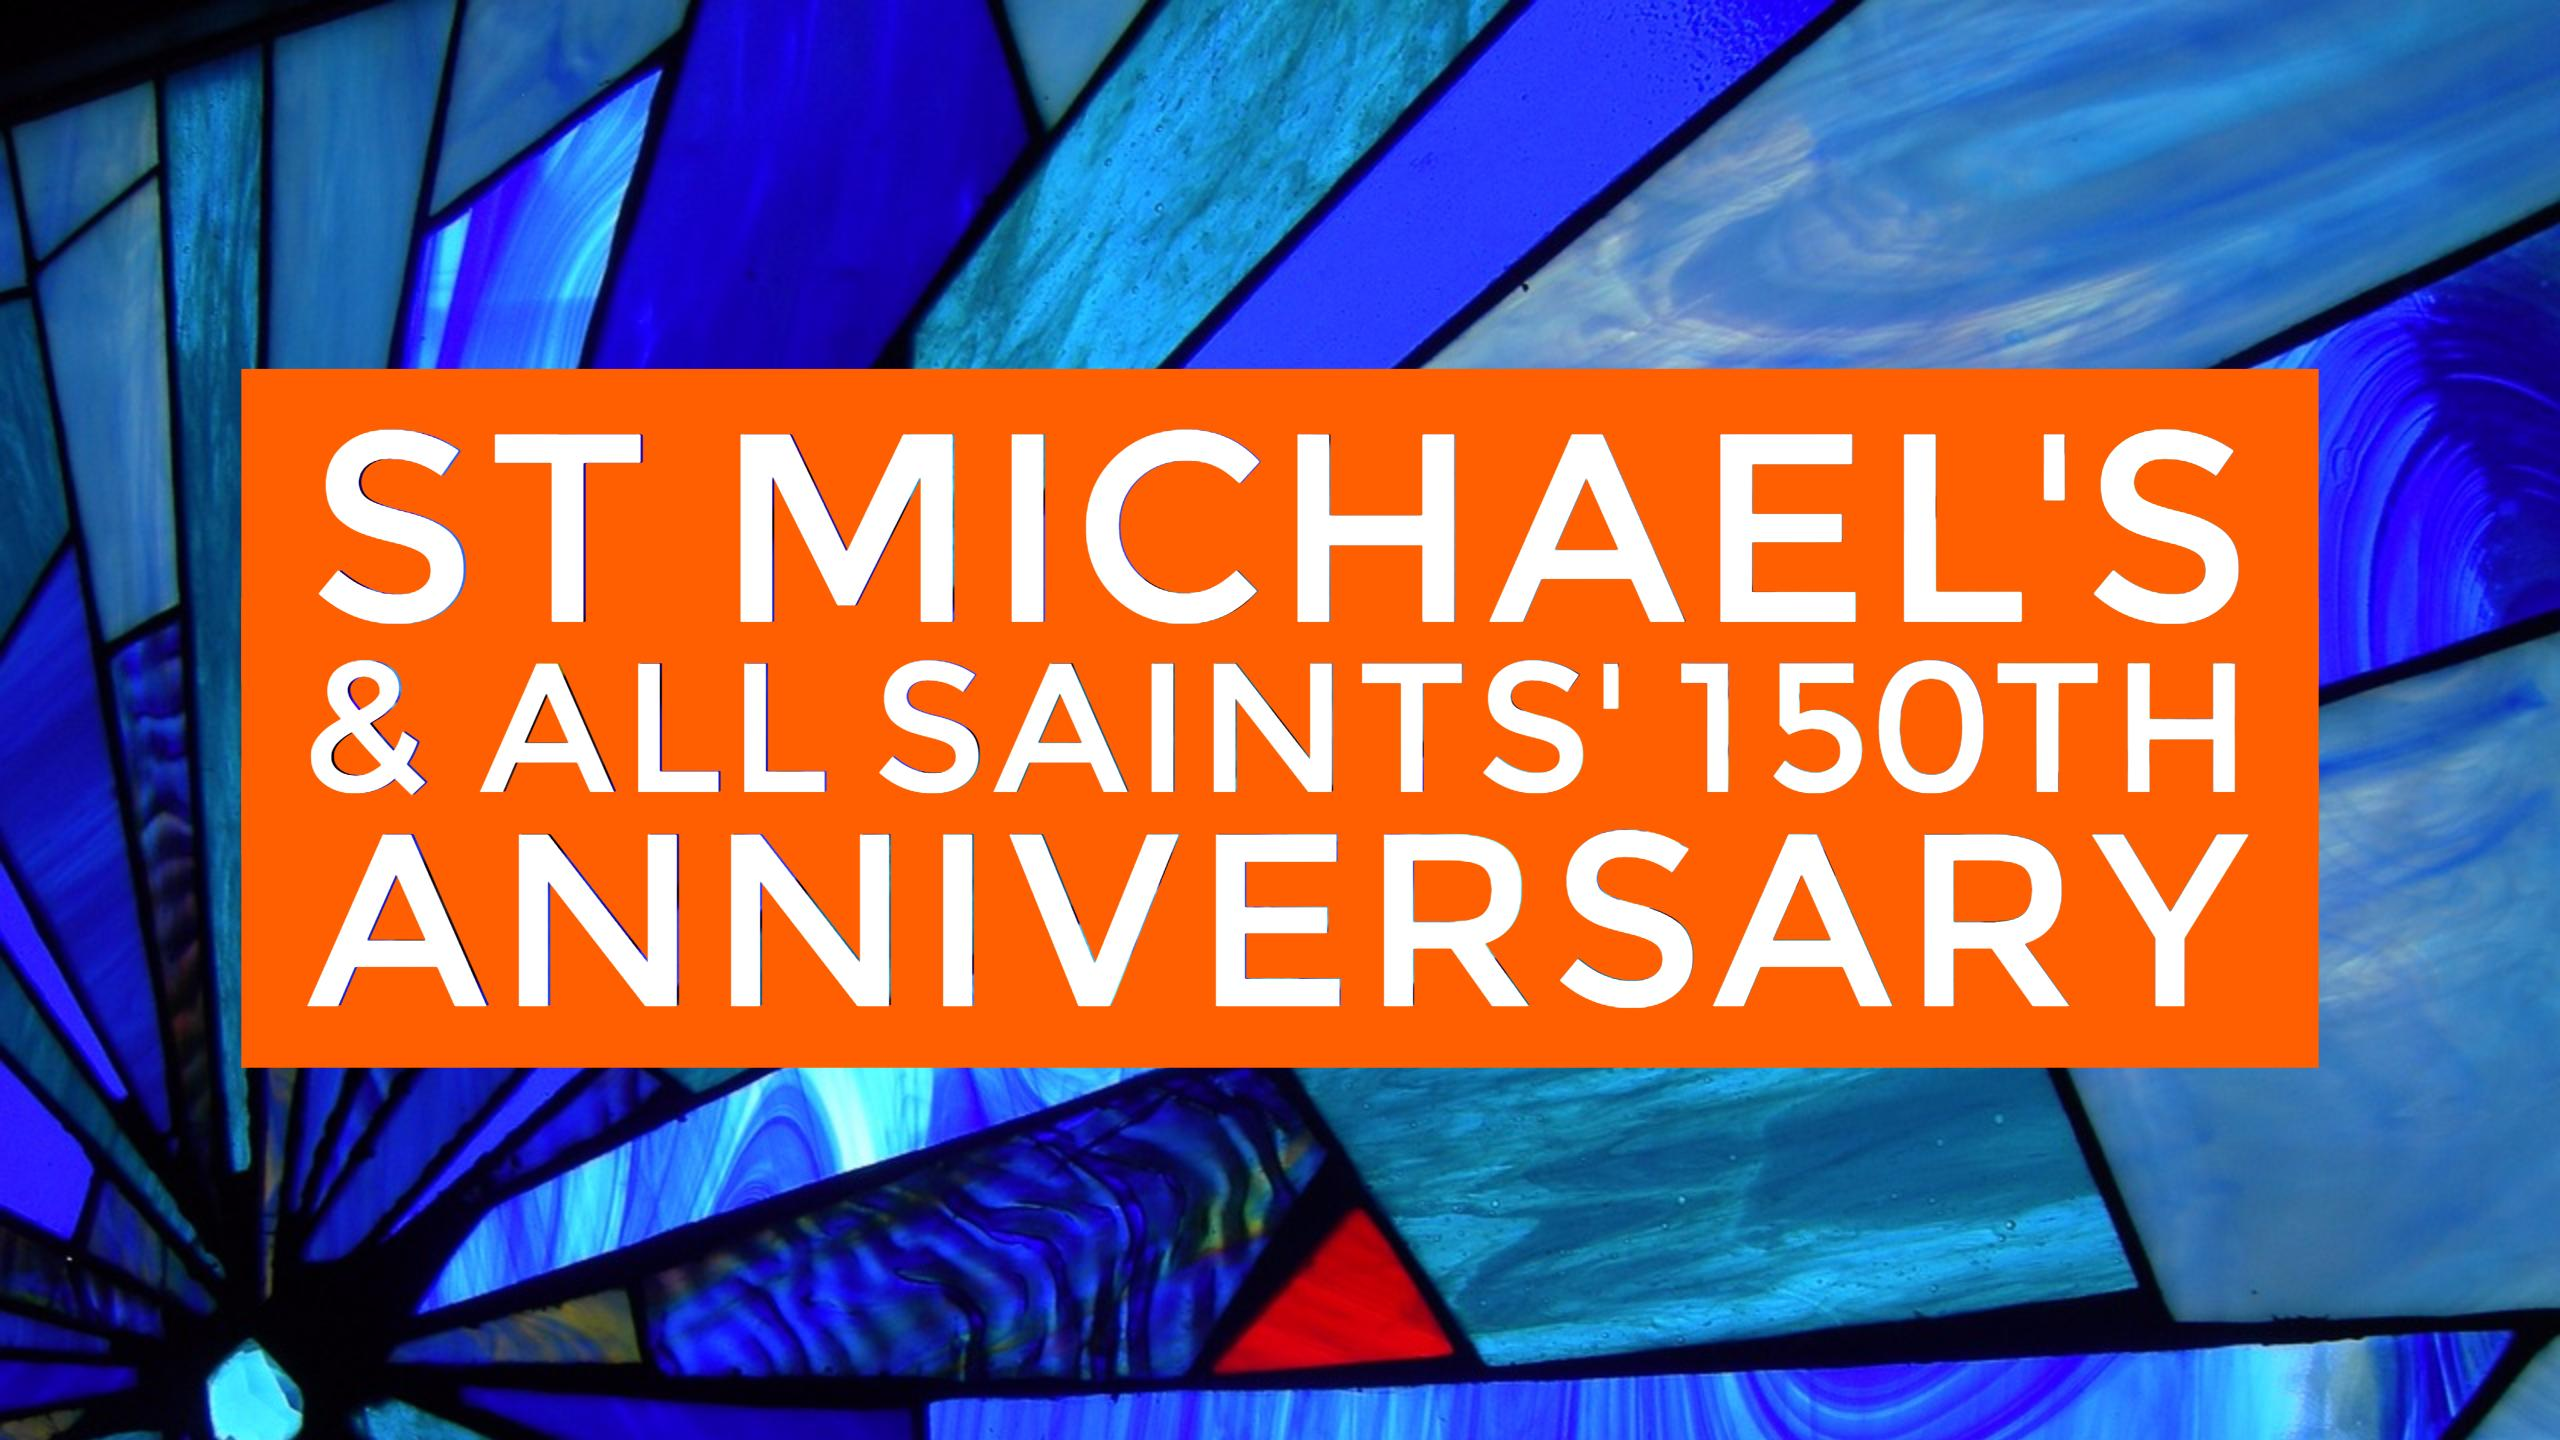 St Michael's and All Saint's celebrate their 150th Anniversary